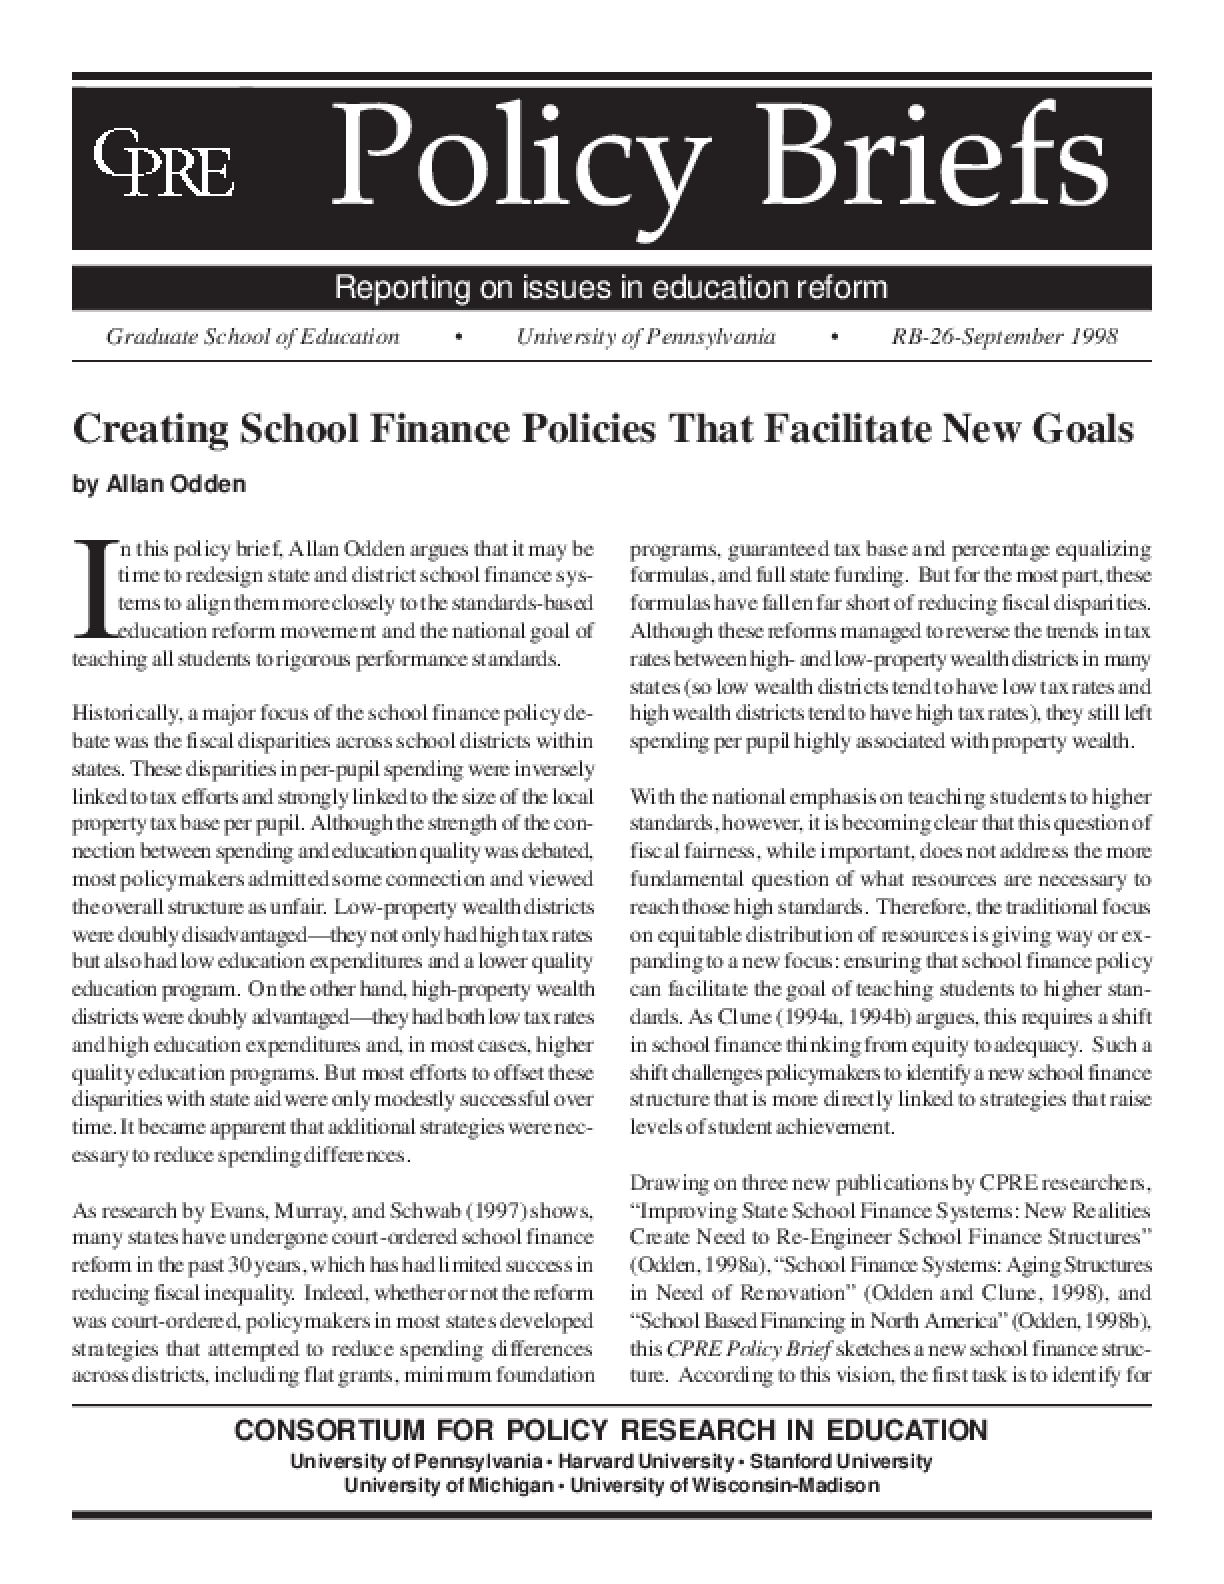 Creating School Finance Policies That Facilitate New Goals